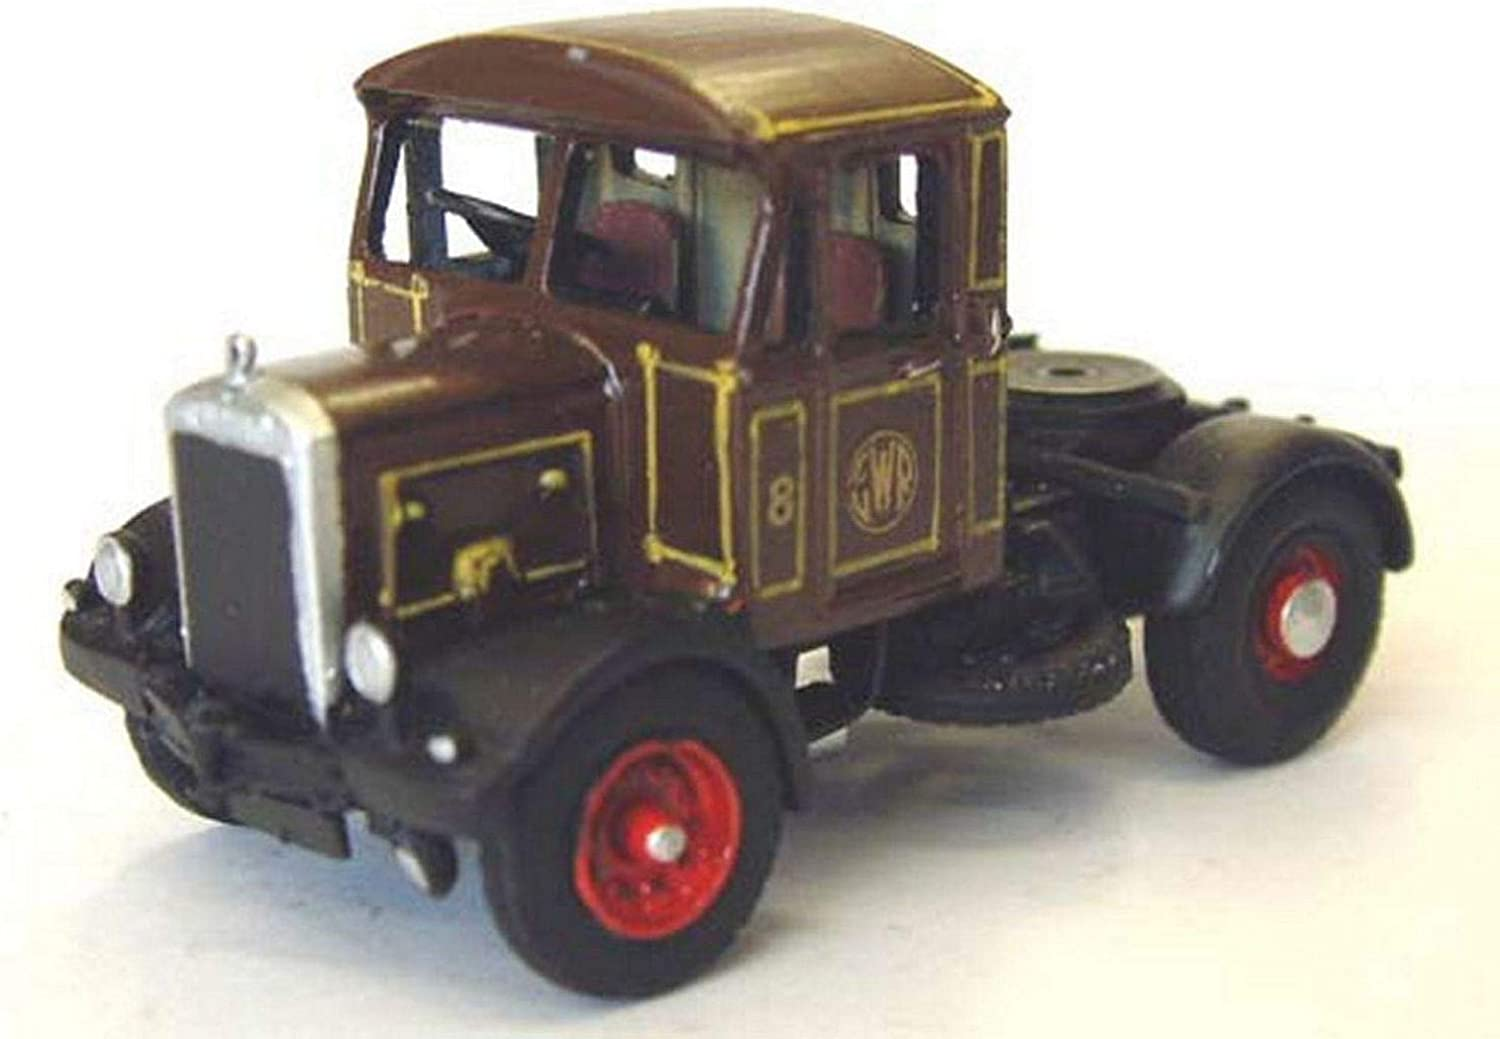 Langley Models Scammell 45cD tractor unit 1939 OO Scale UNPAINTED Model Kit G85